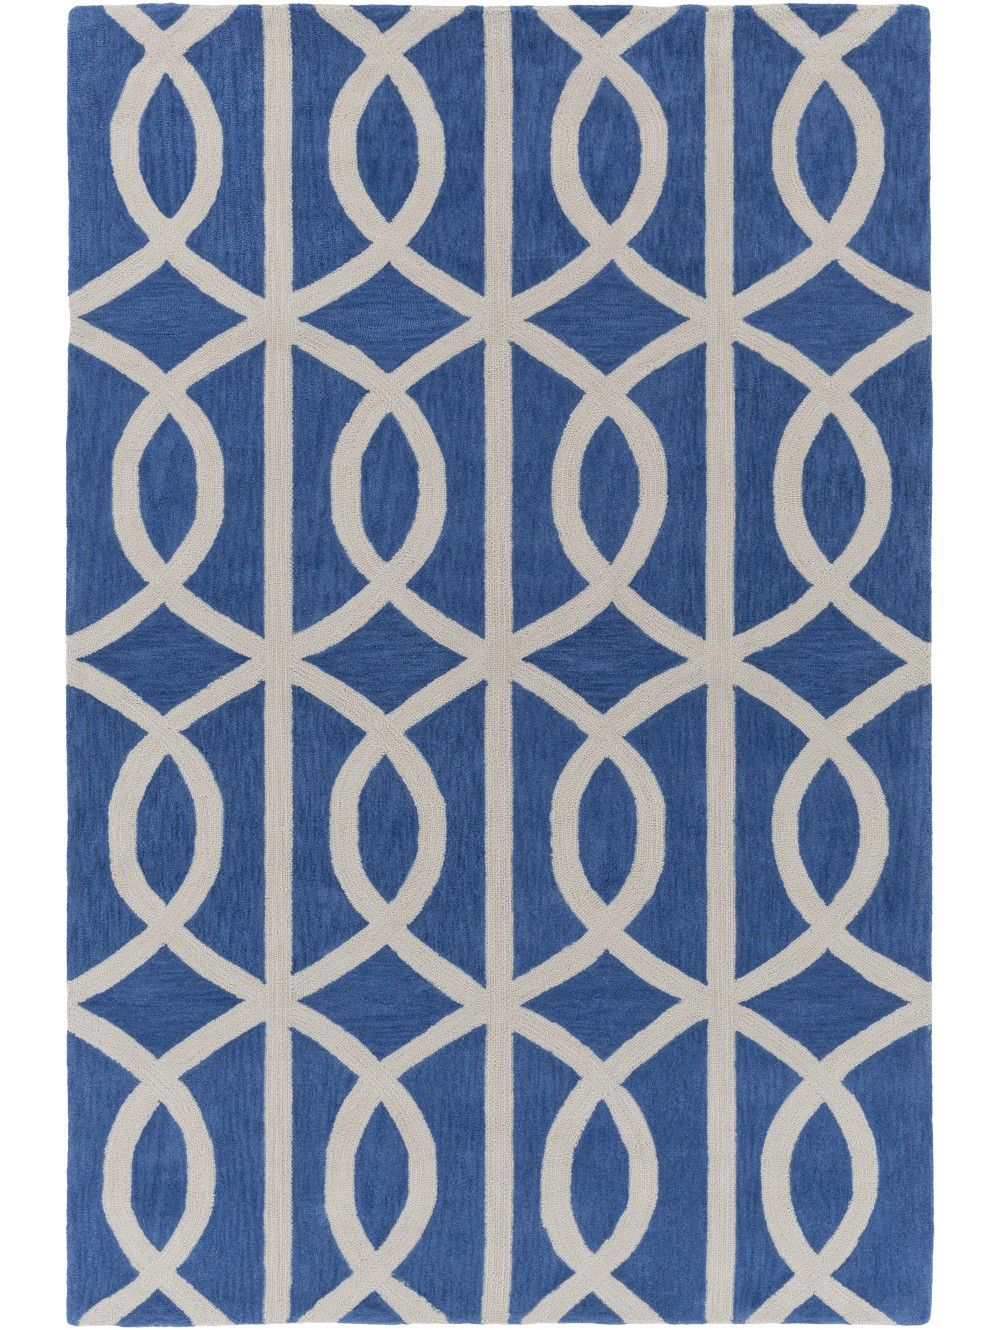 Almont Rug, Sea